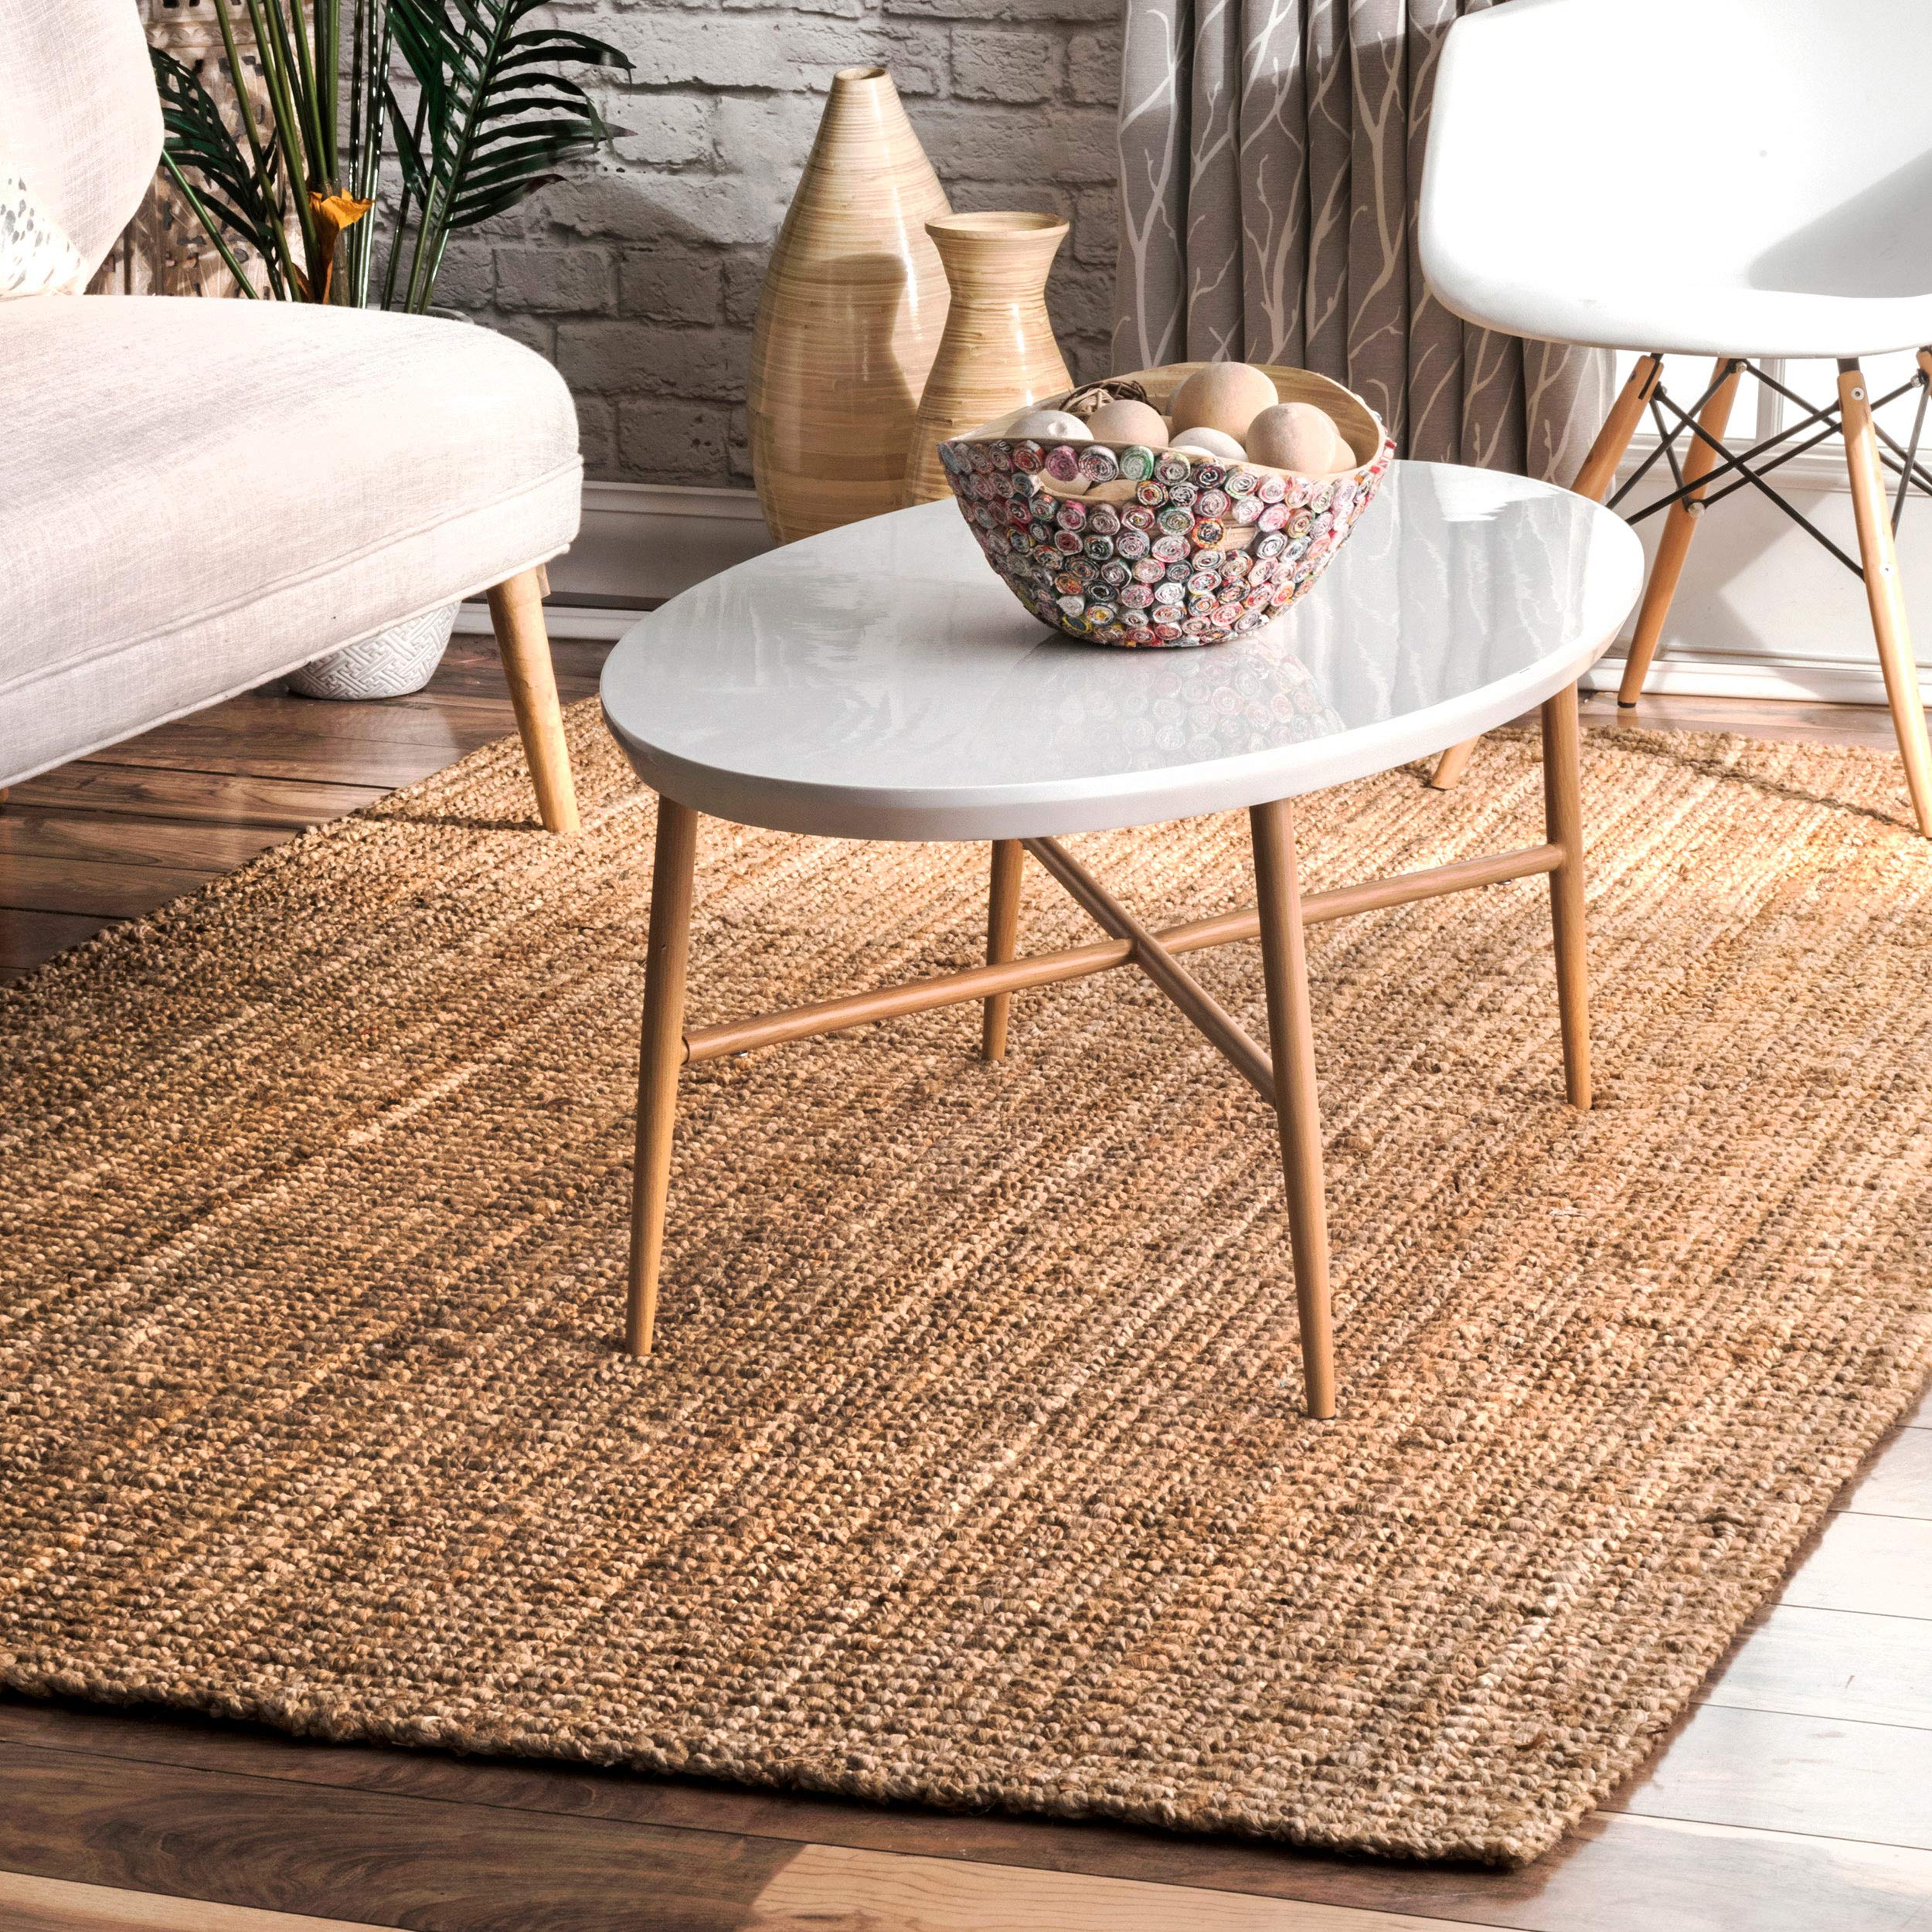 nuLOOM Handwoven Jute Ribbed Solid Area Rugs, 4' x 6', Natural by nuLOOM (Image #1)